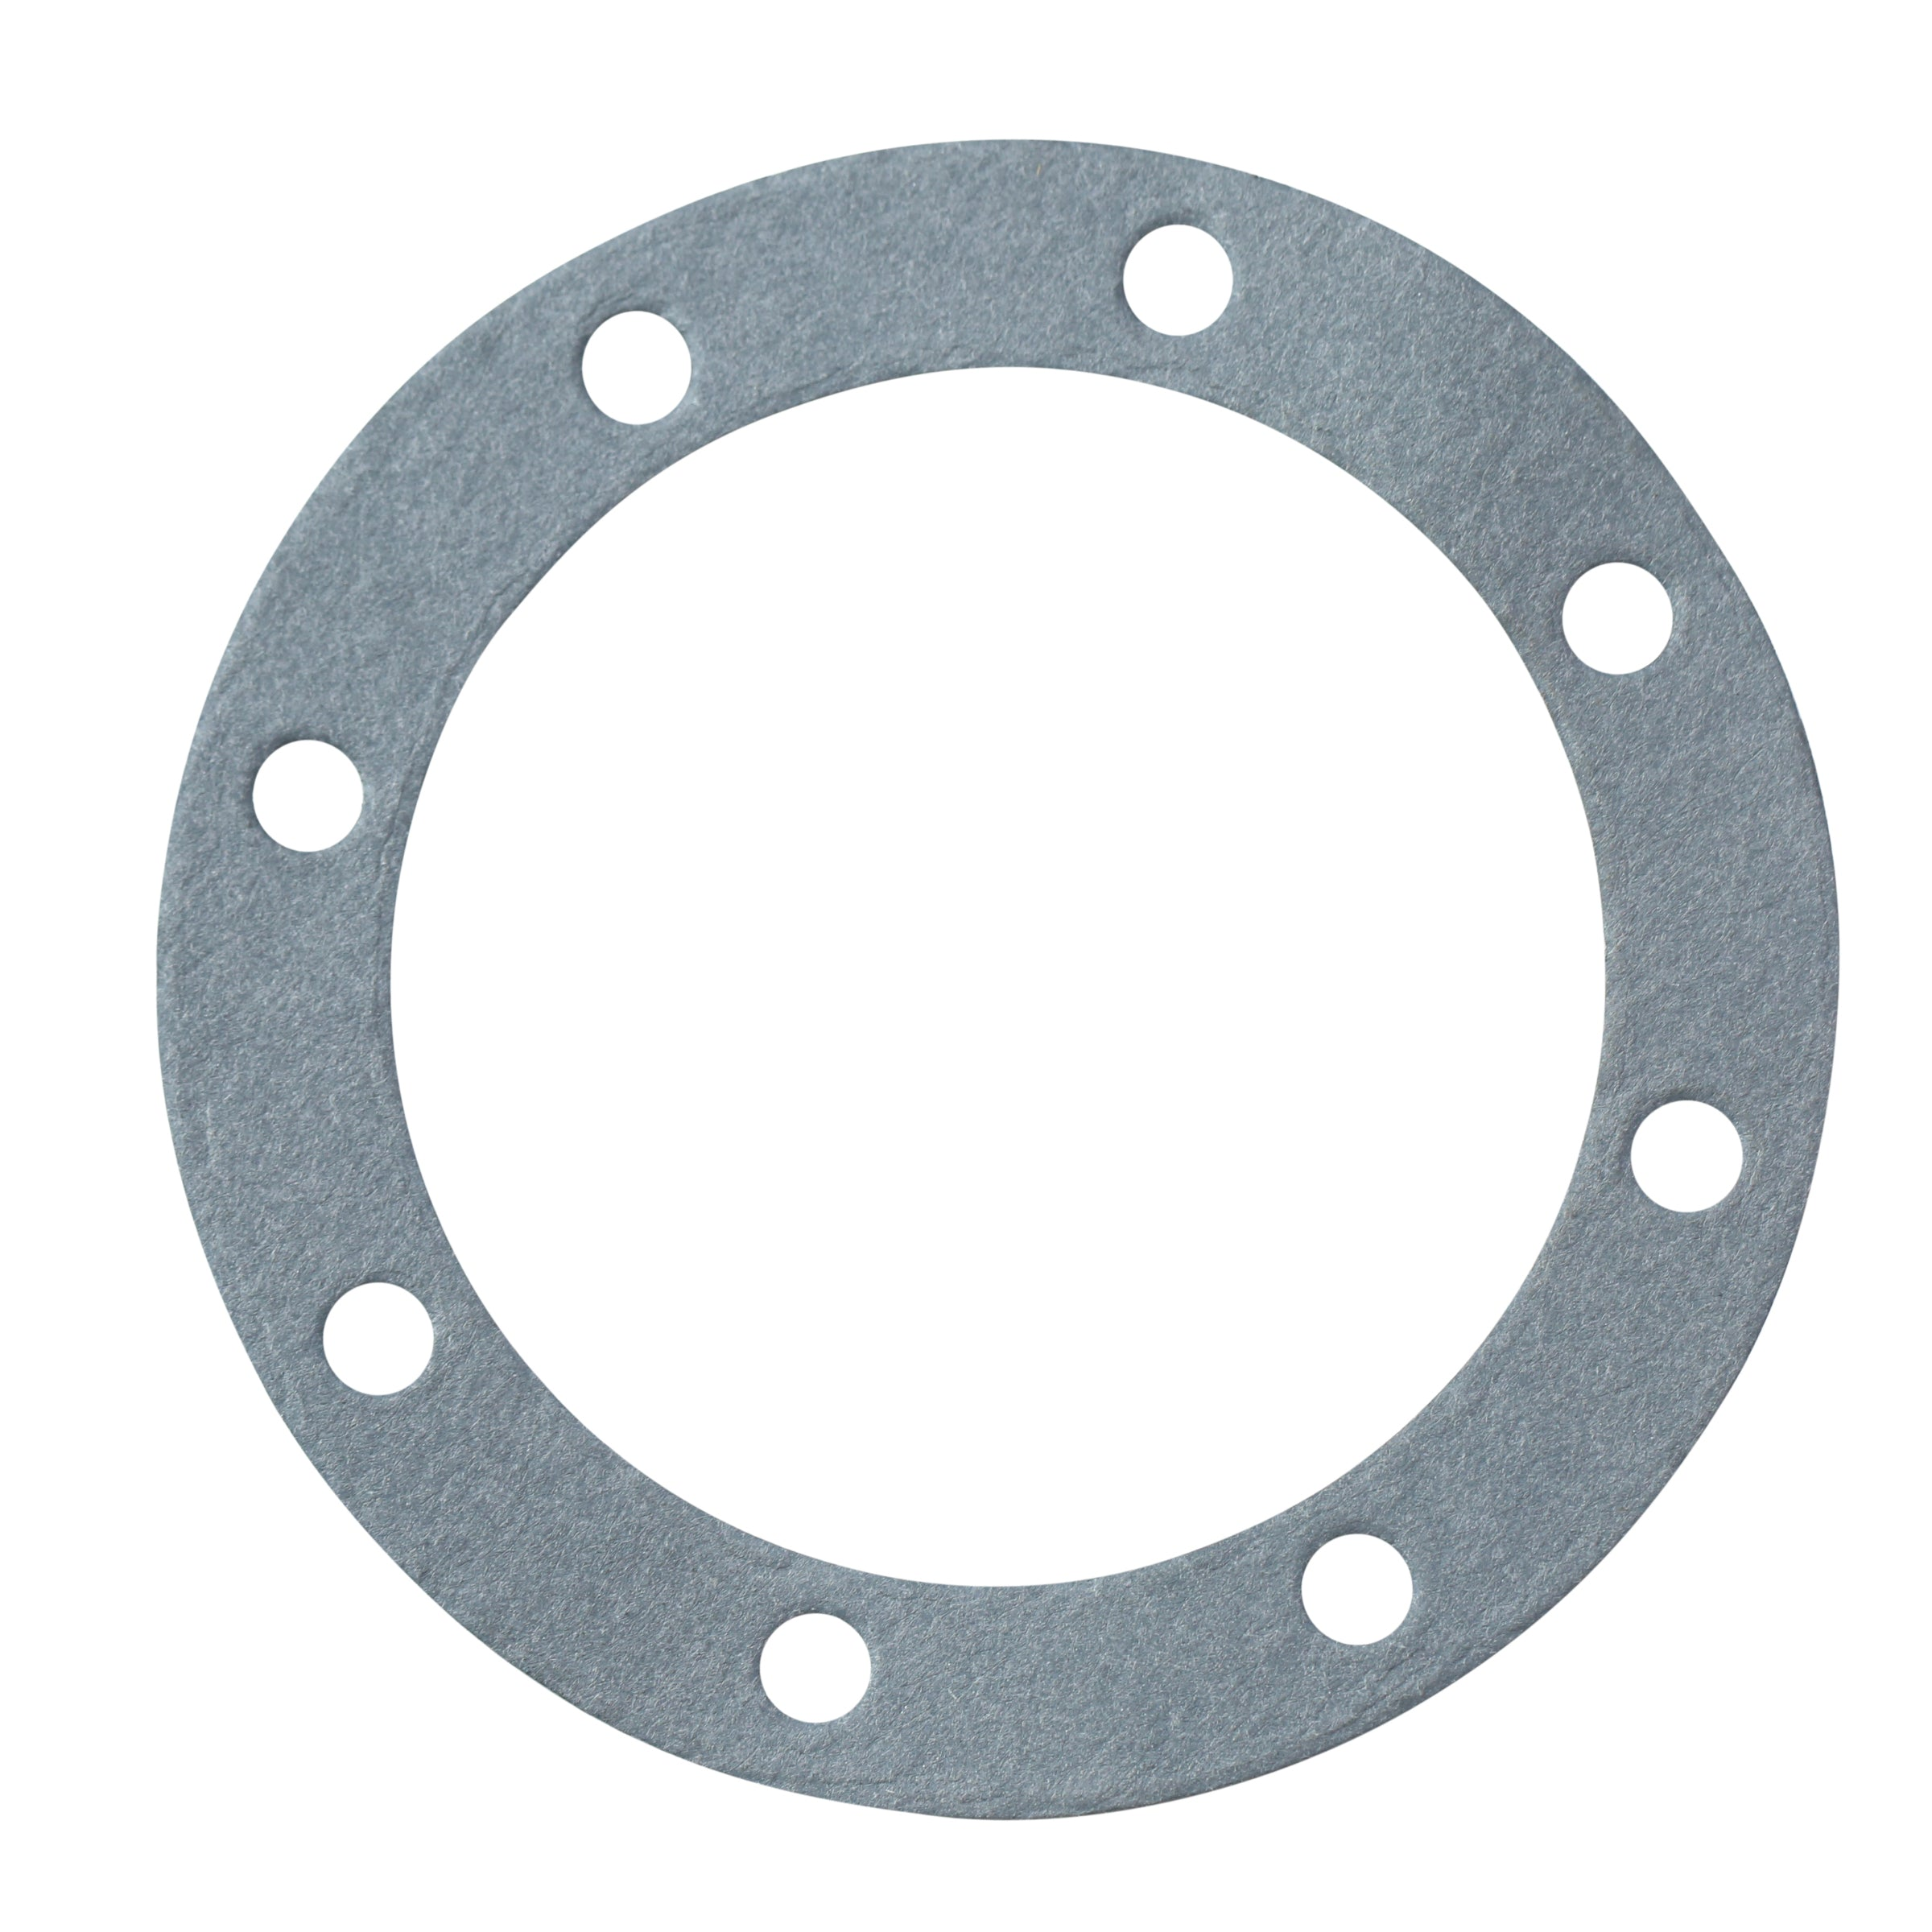 Fan Spindle Gasket (Front) • 1942-48 Ford